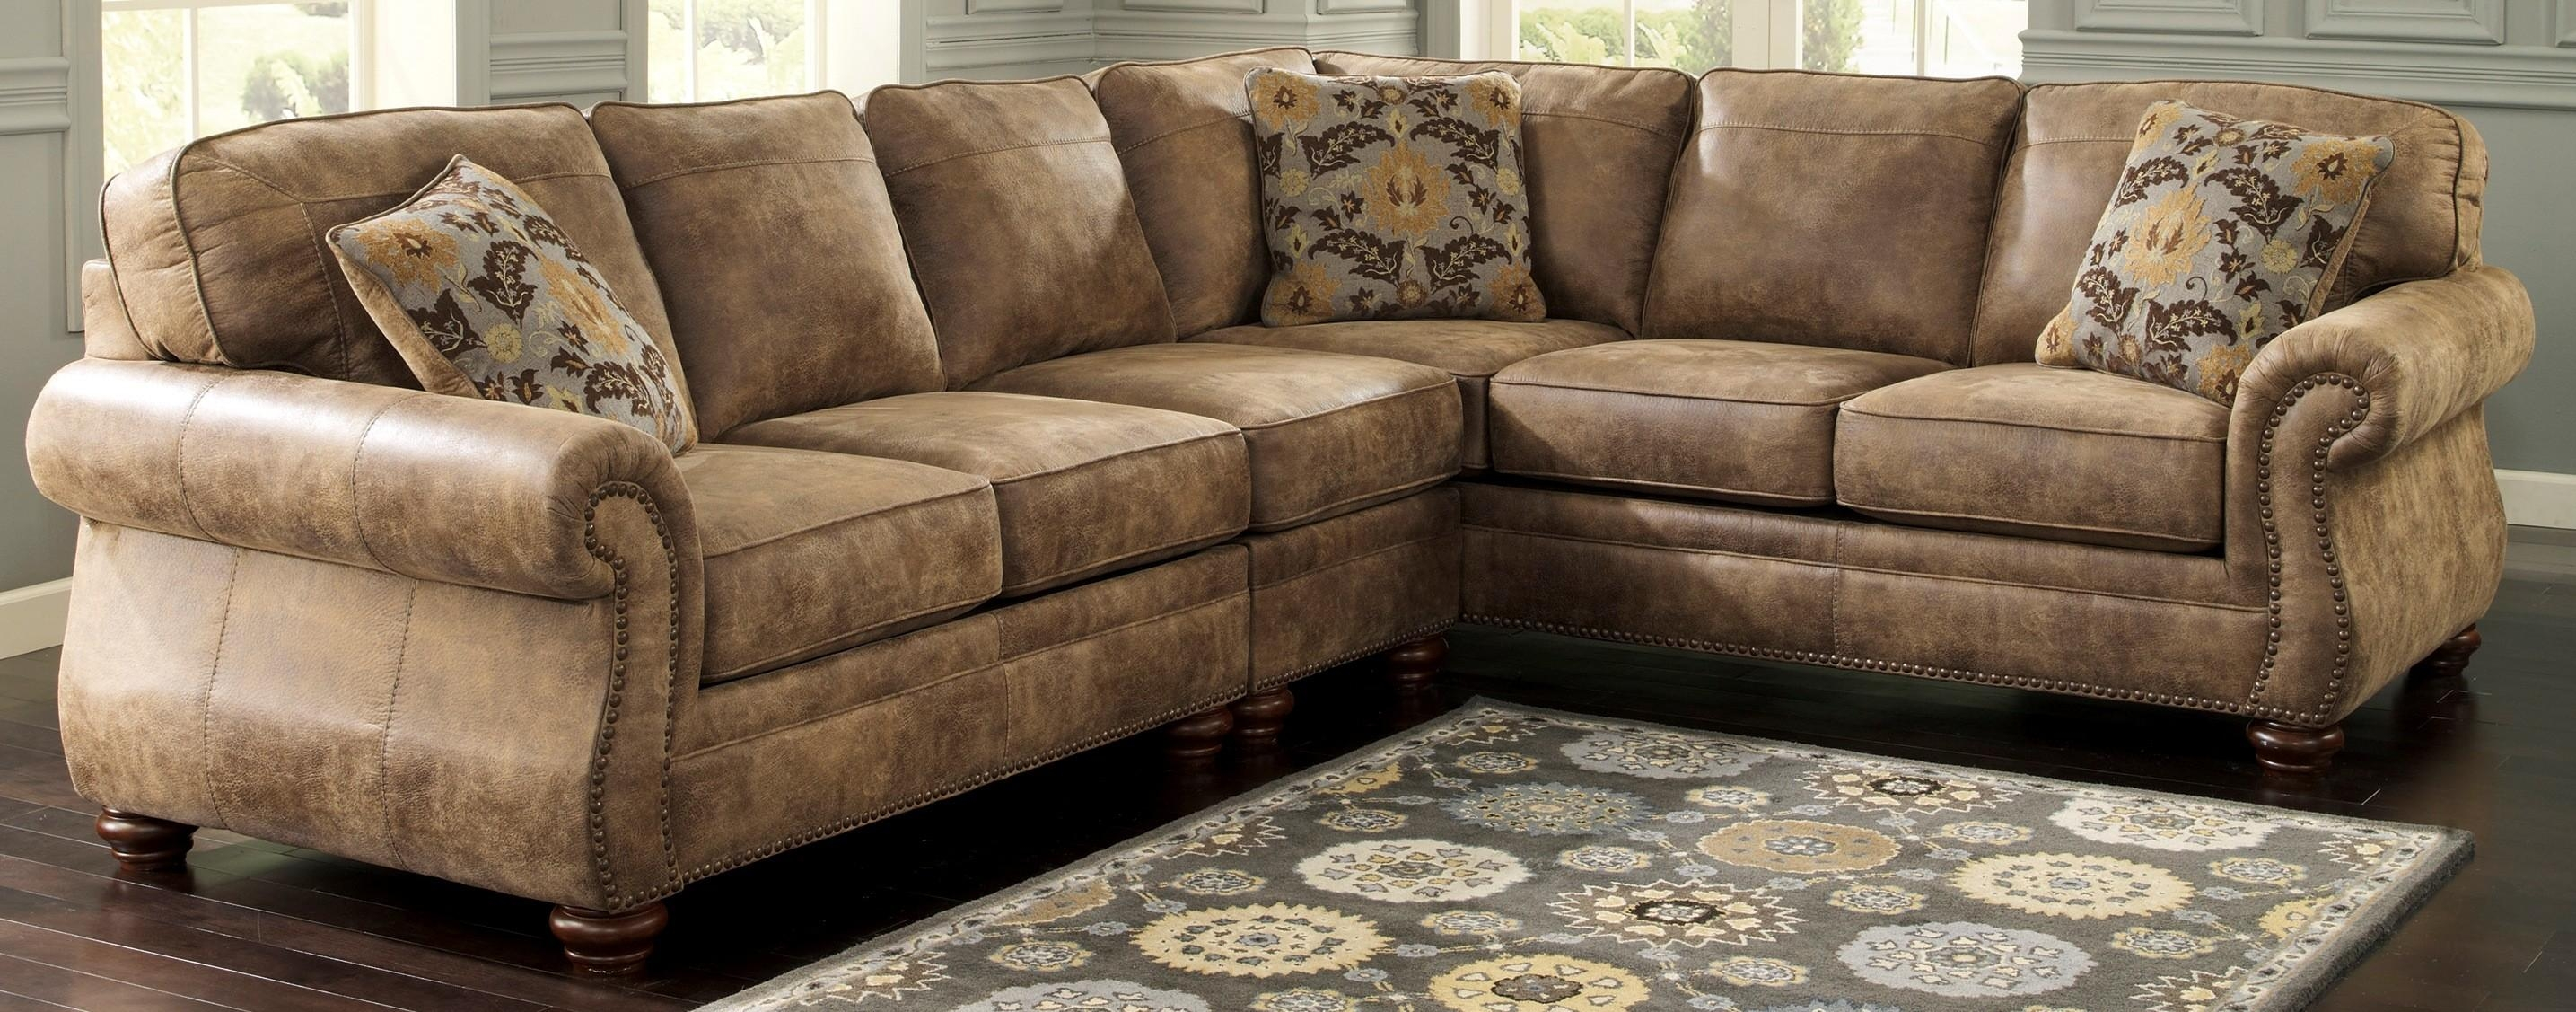 Ideas: Faux Leather Sectional Sofa Ashley And Ashley Sectional Within Ashley Faux Leather Sectional Sofas (View 13 of 20)